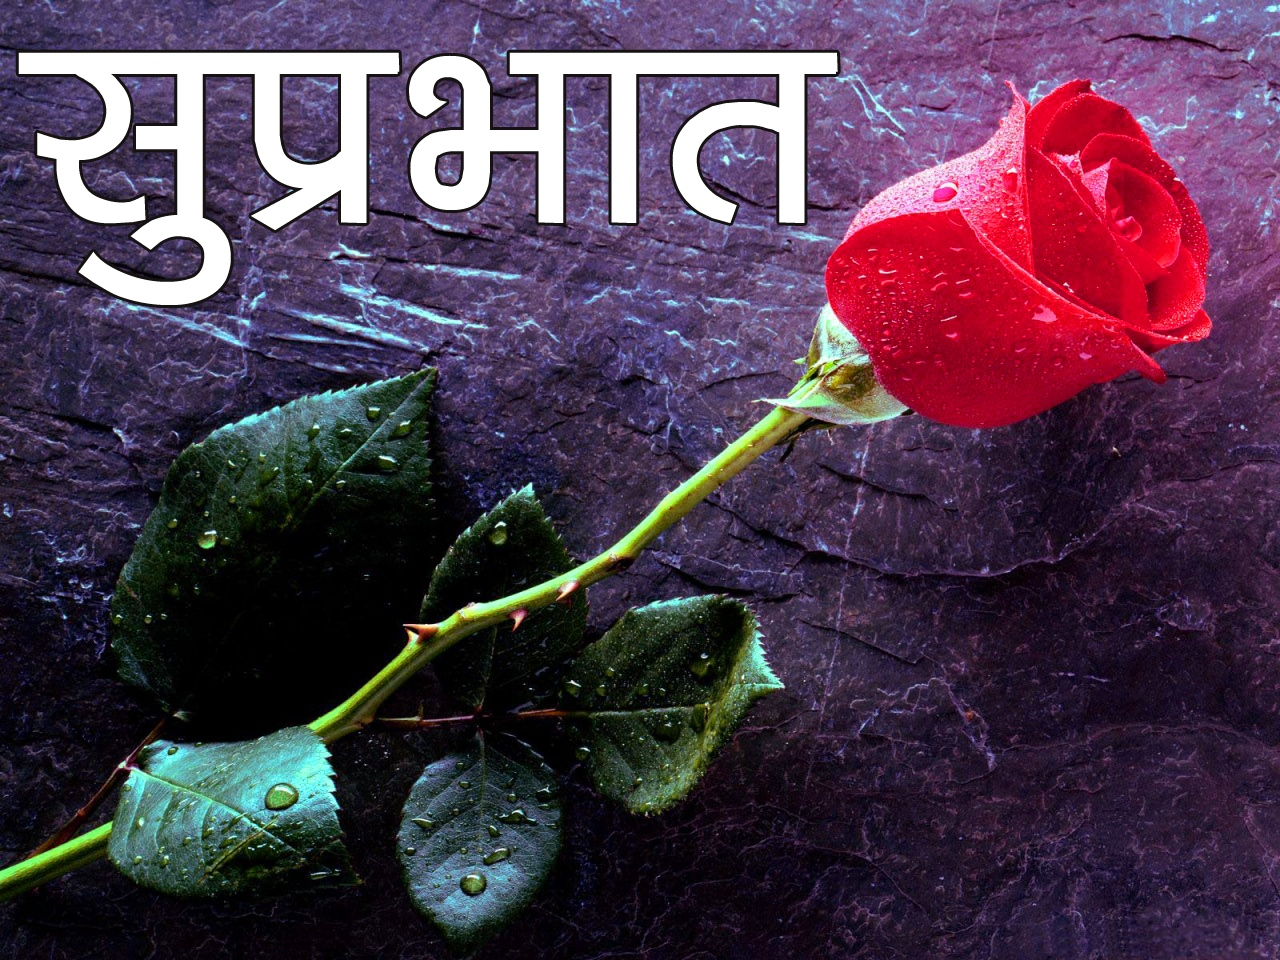 Red Rose Suprabhat Images 19